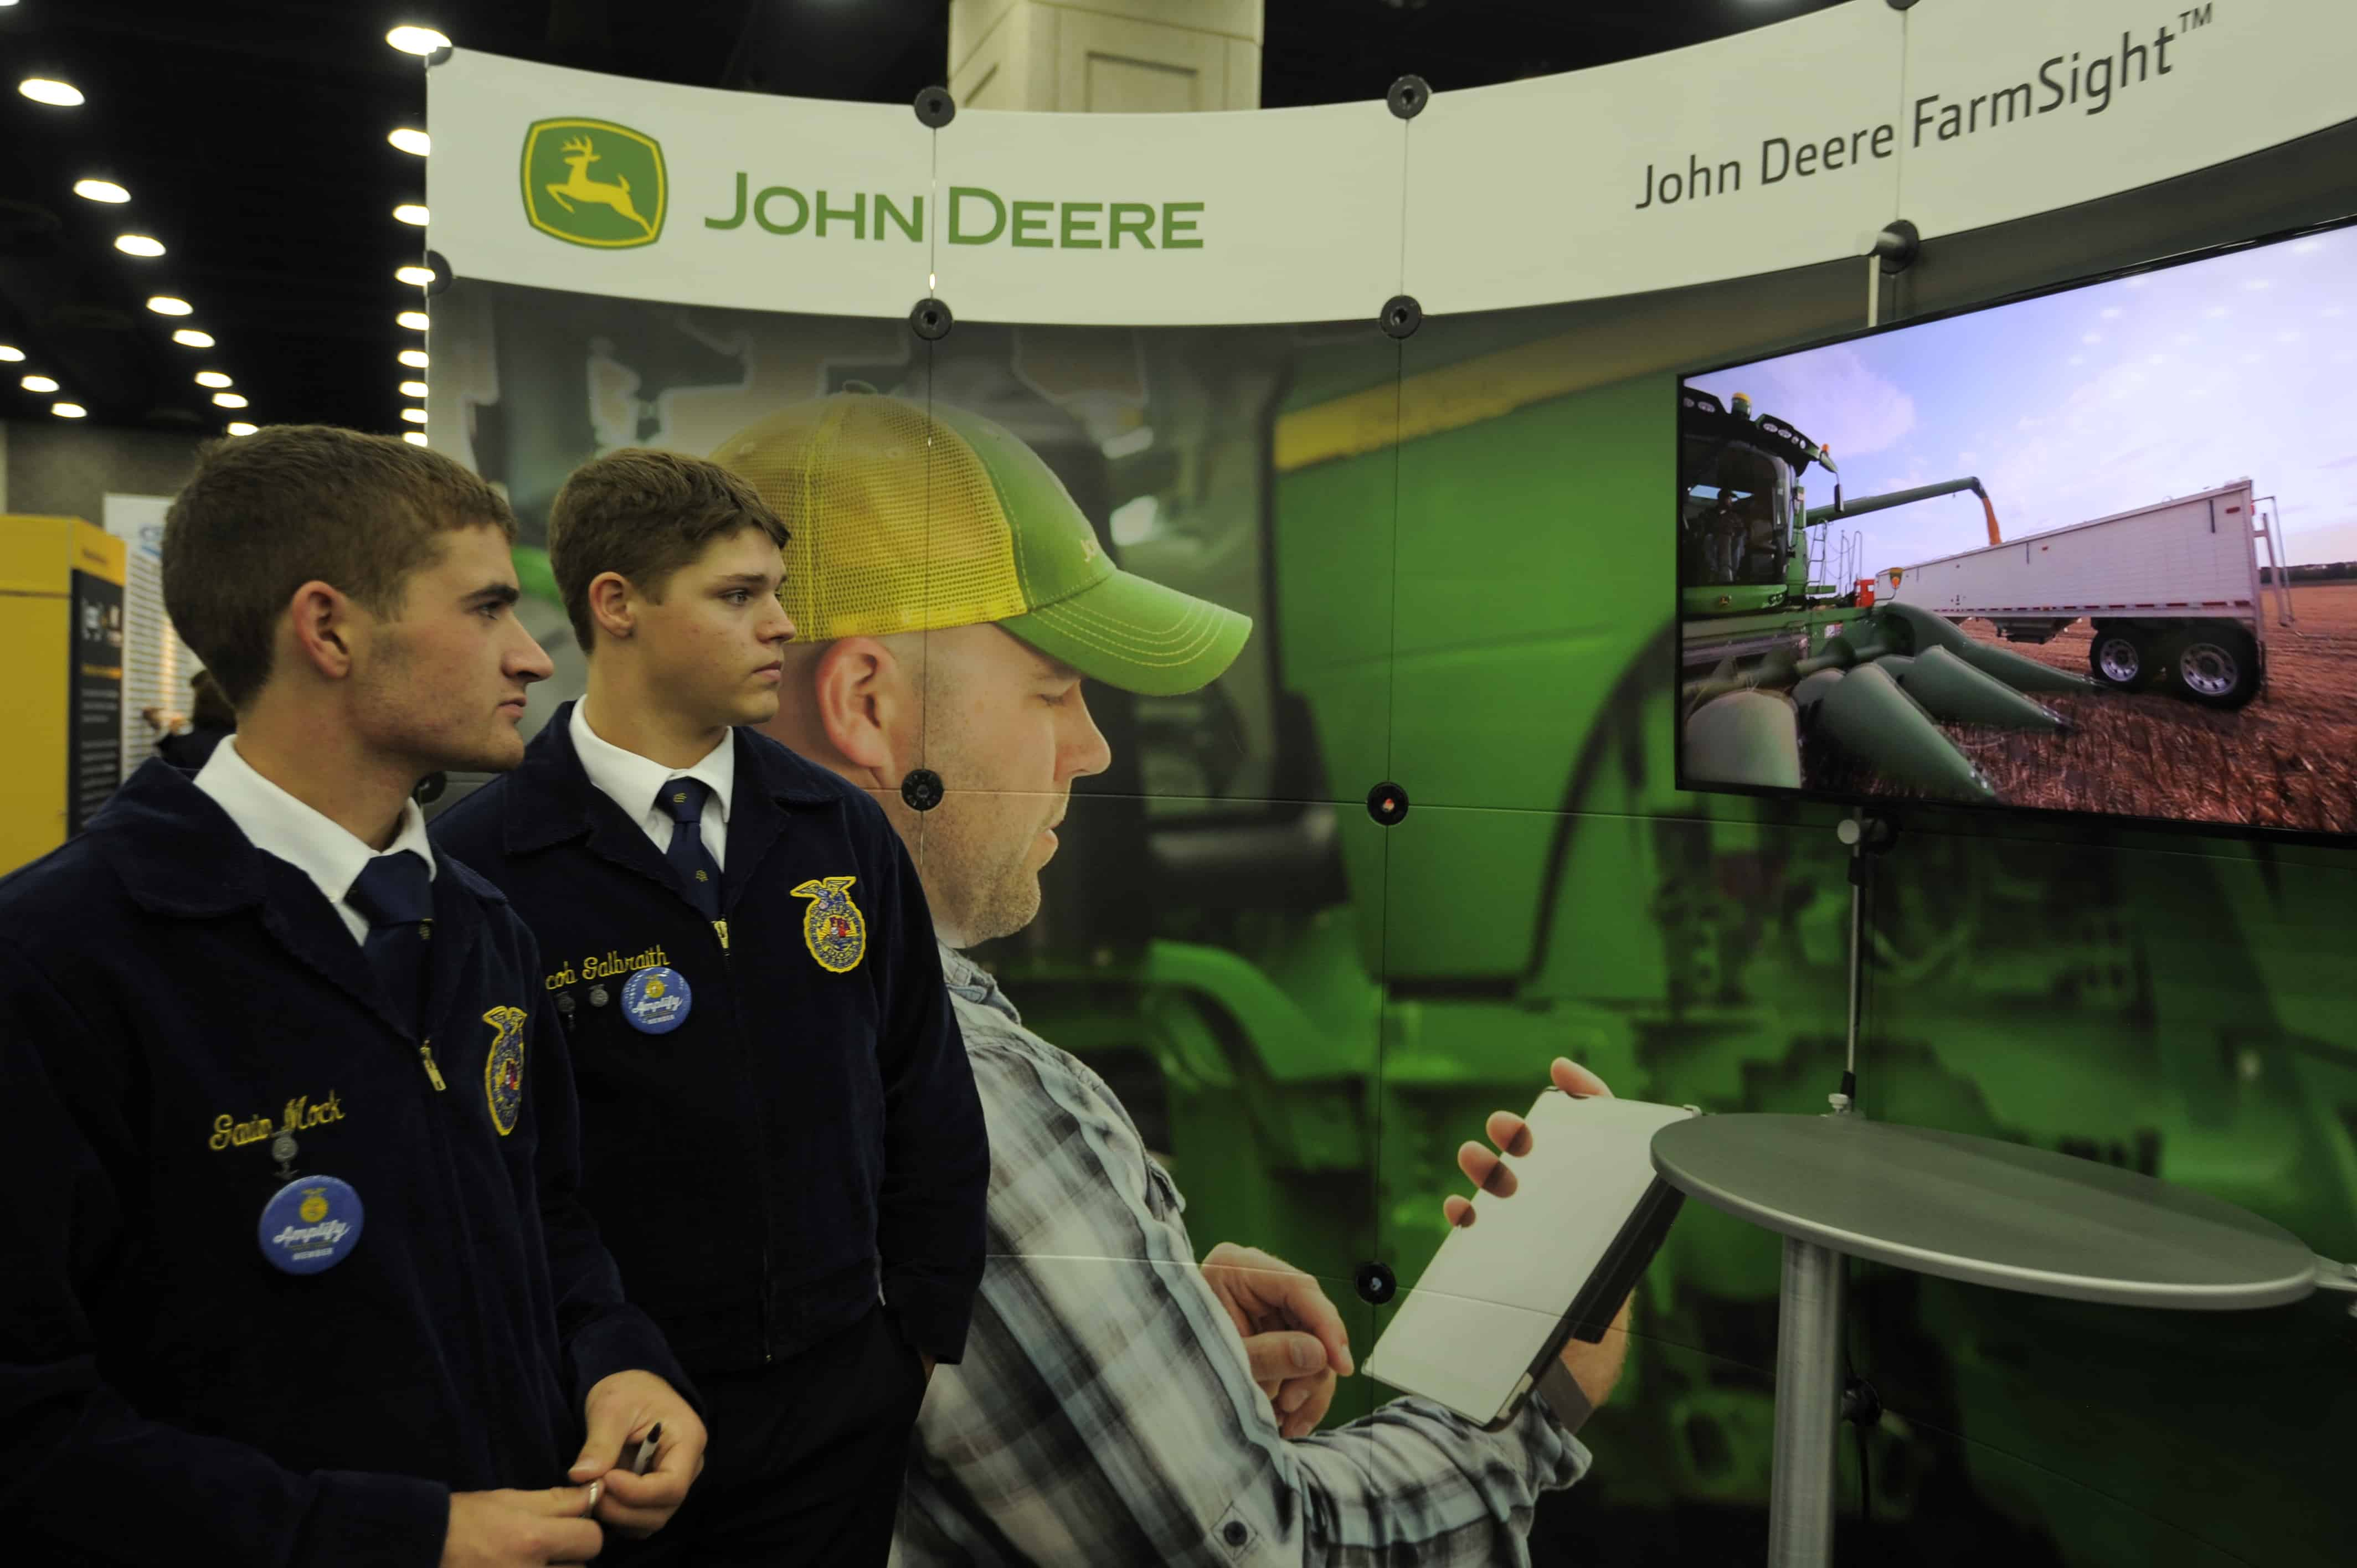 FFA Sponsor John Deere Celebrates Diamond Anniversary of Giving